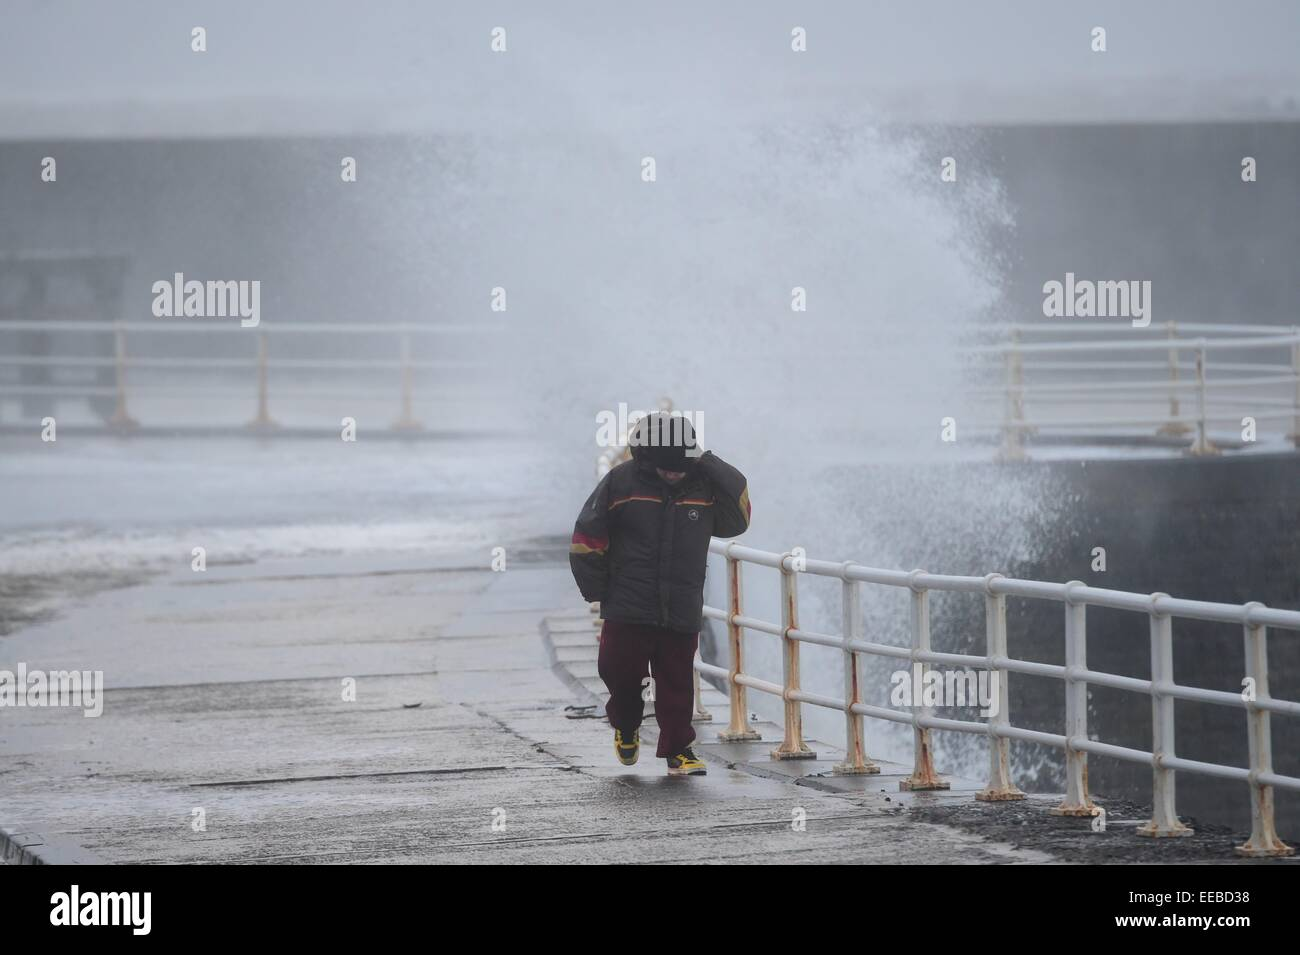 Aberystwyth, Wales, UK. 15th January, 2015. UK Weather: A man struggles to walk against the force of the wind as - Stock Image